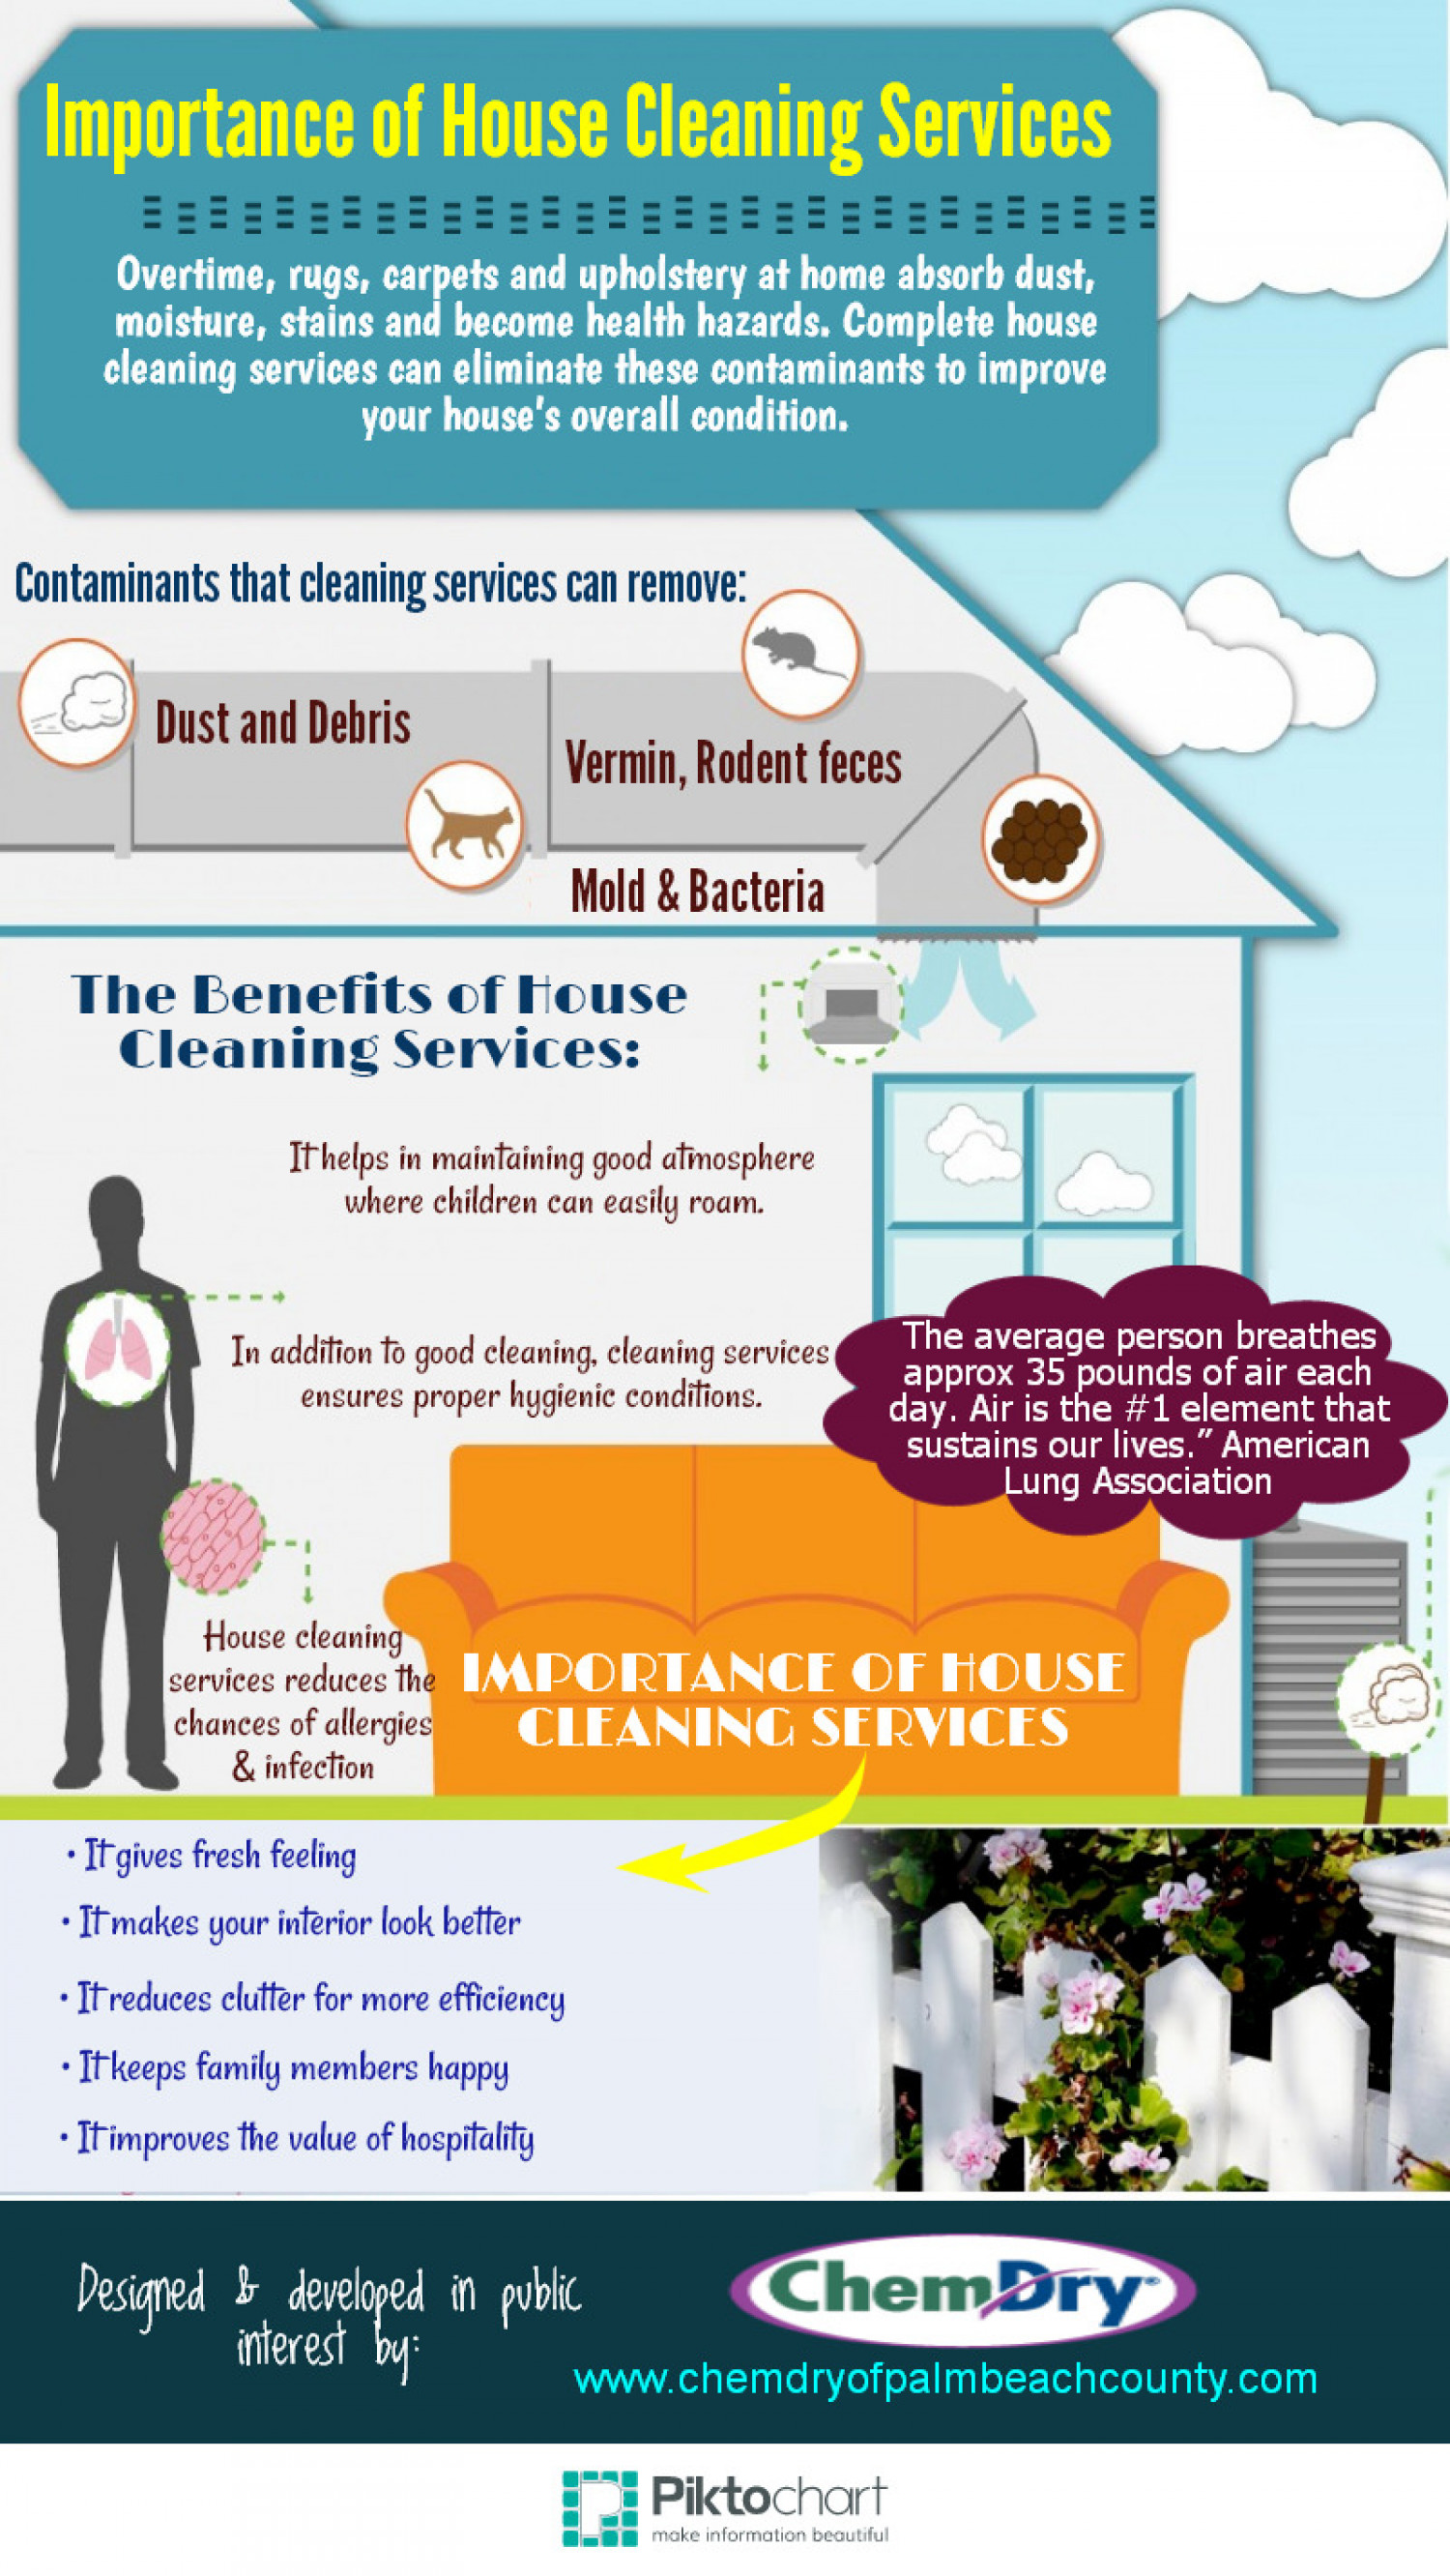 Importance of House Cleaning Services Infographic